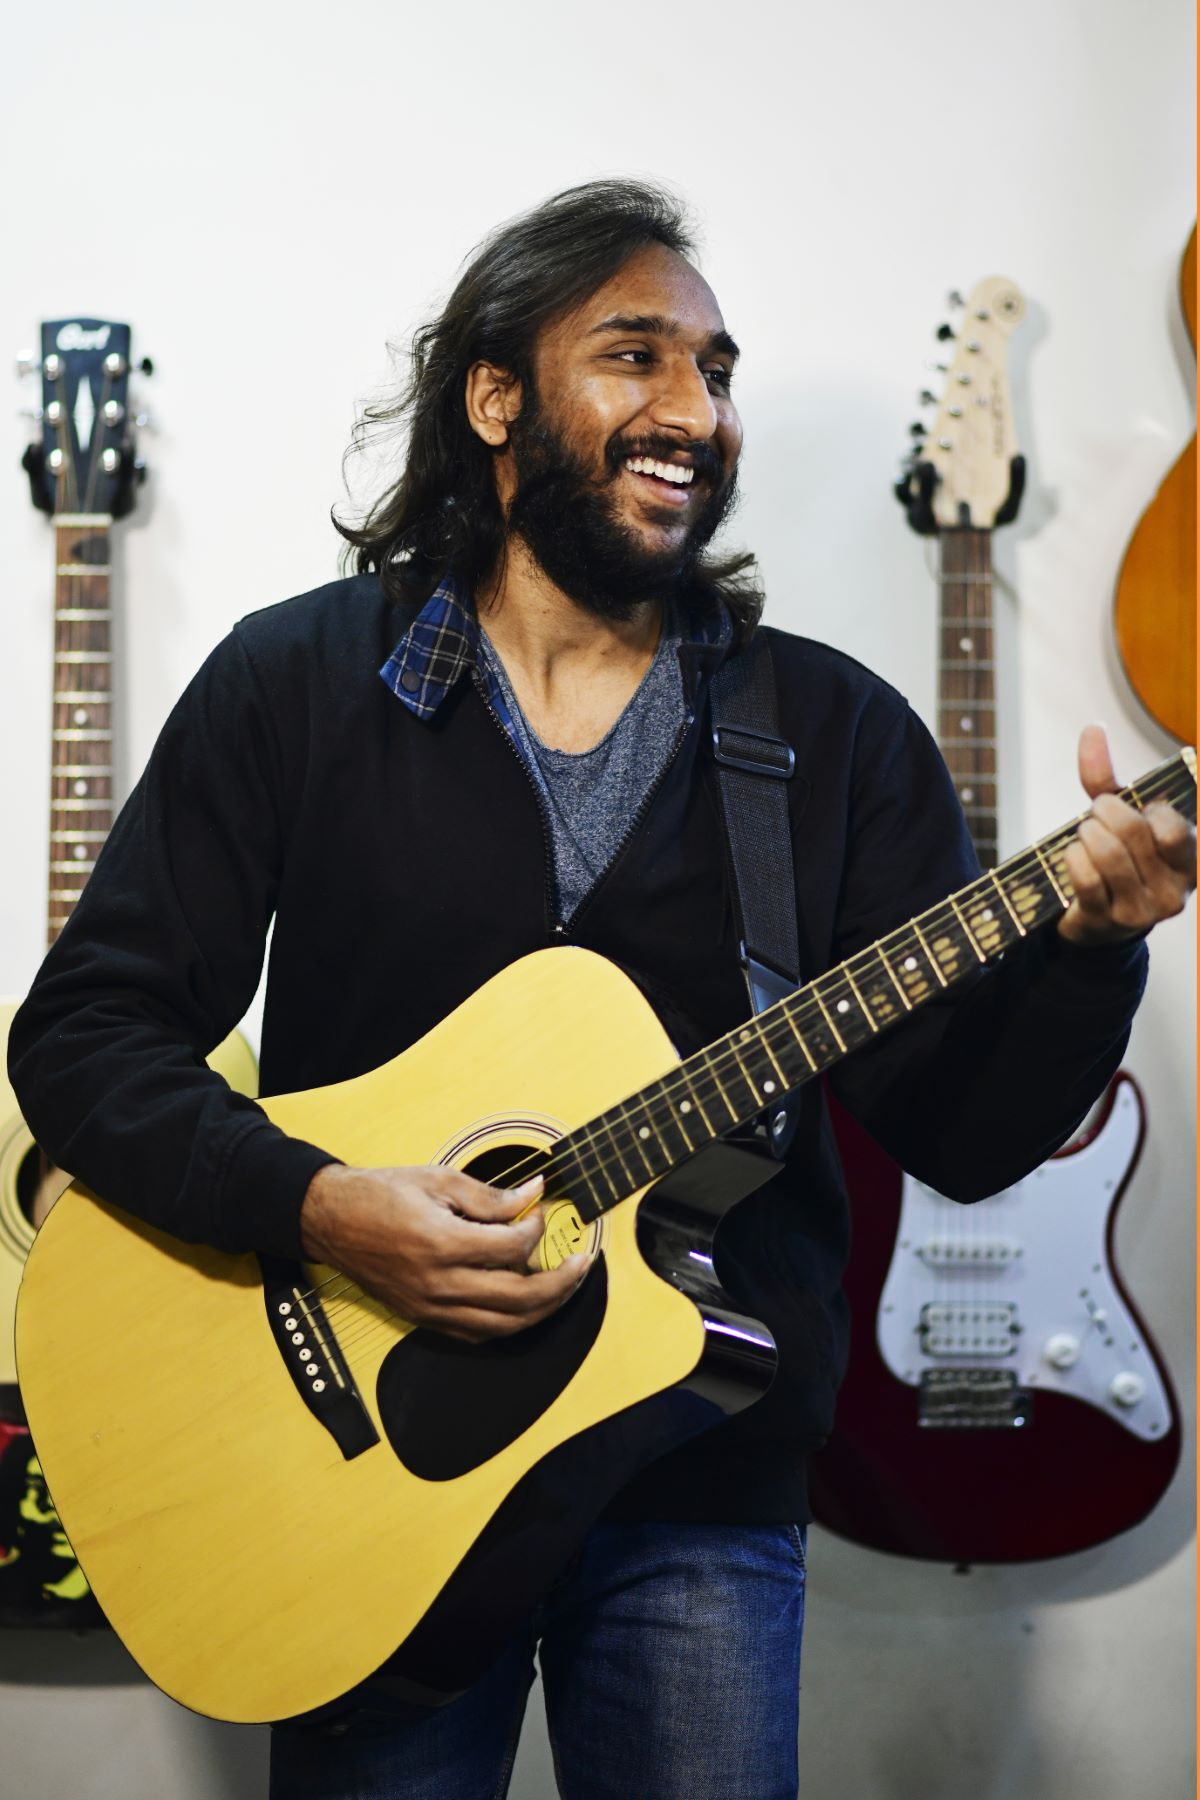 A Portrait of Raj Shah: Lead Guitarist and Composer at Ehsaas Band